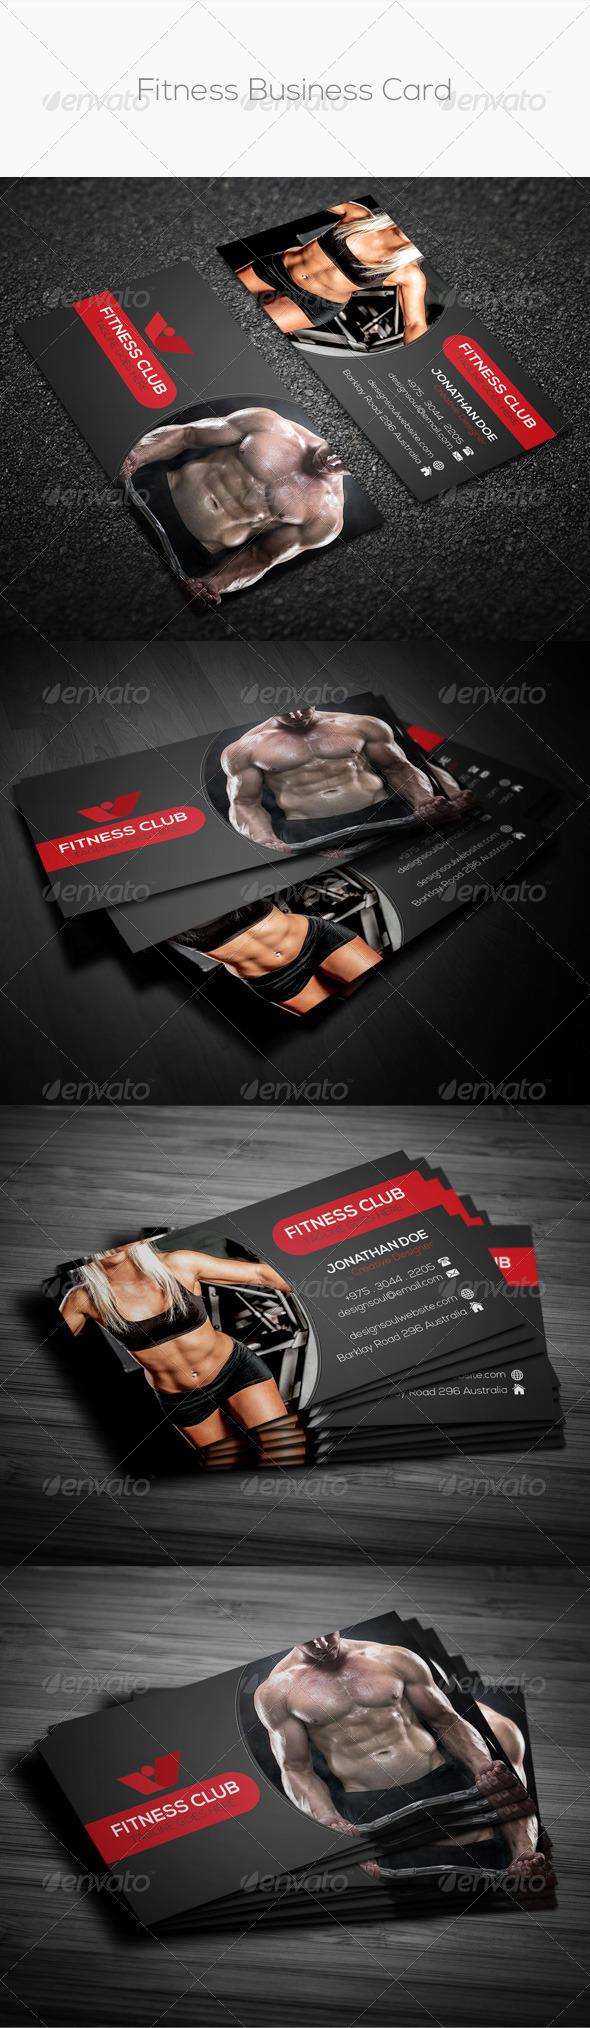 GraphicRiver Fitness Business Card 8729601